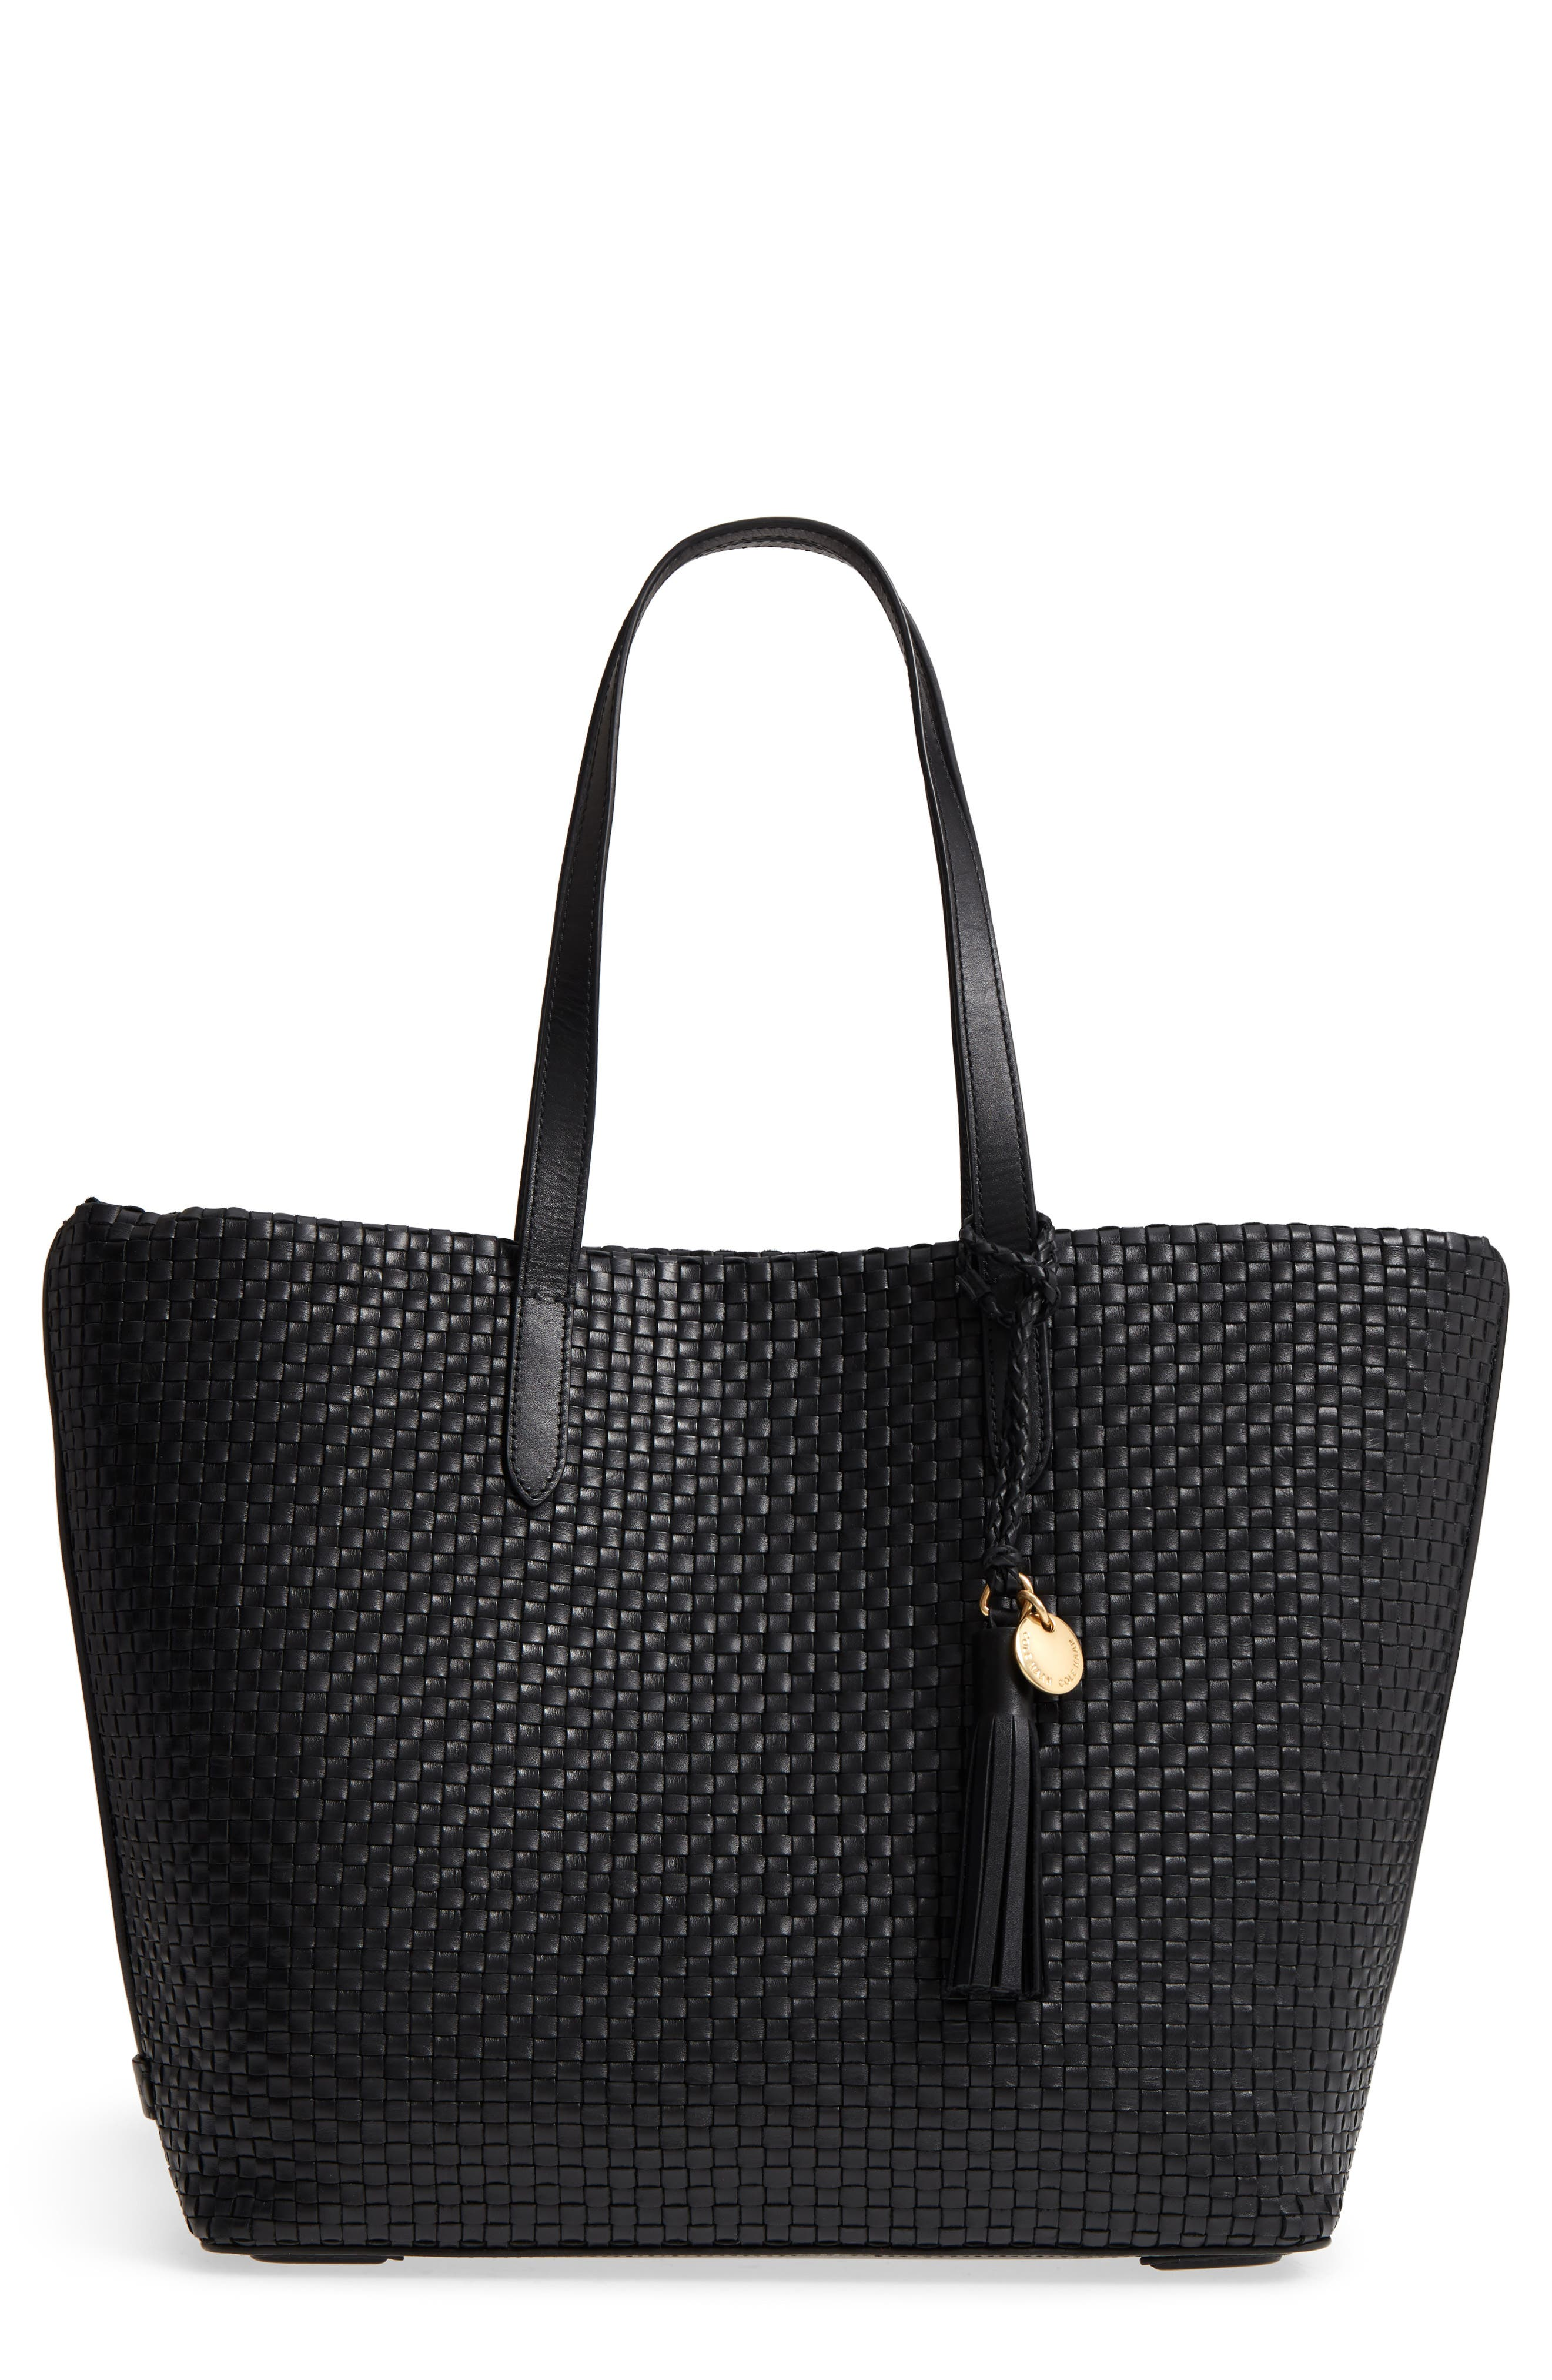 Payson RFID Woven Leather Tote,                             Main thumbnail 1, color,                             001